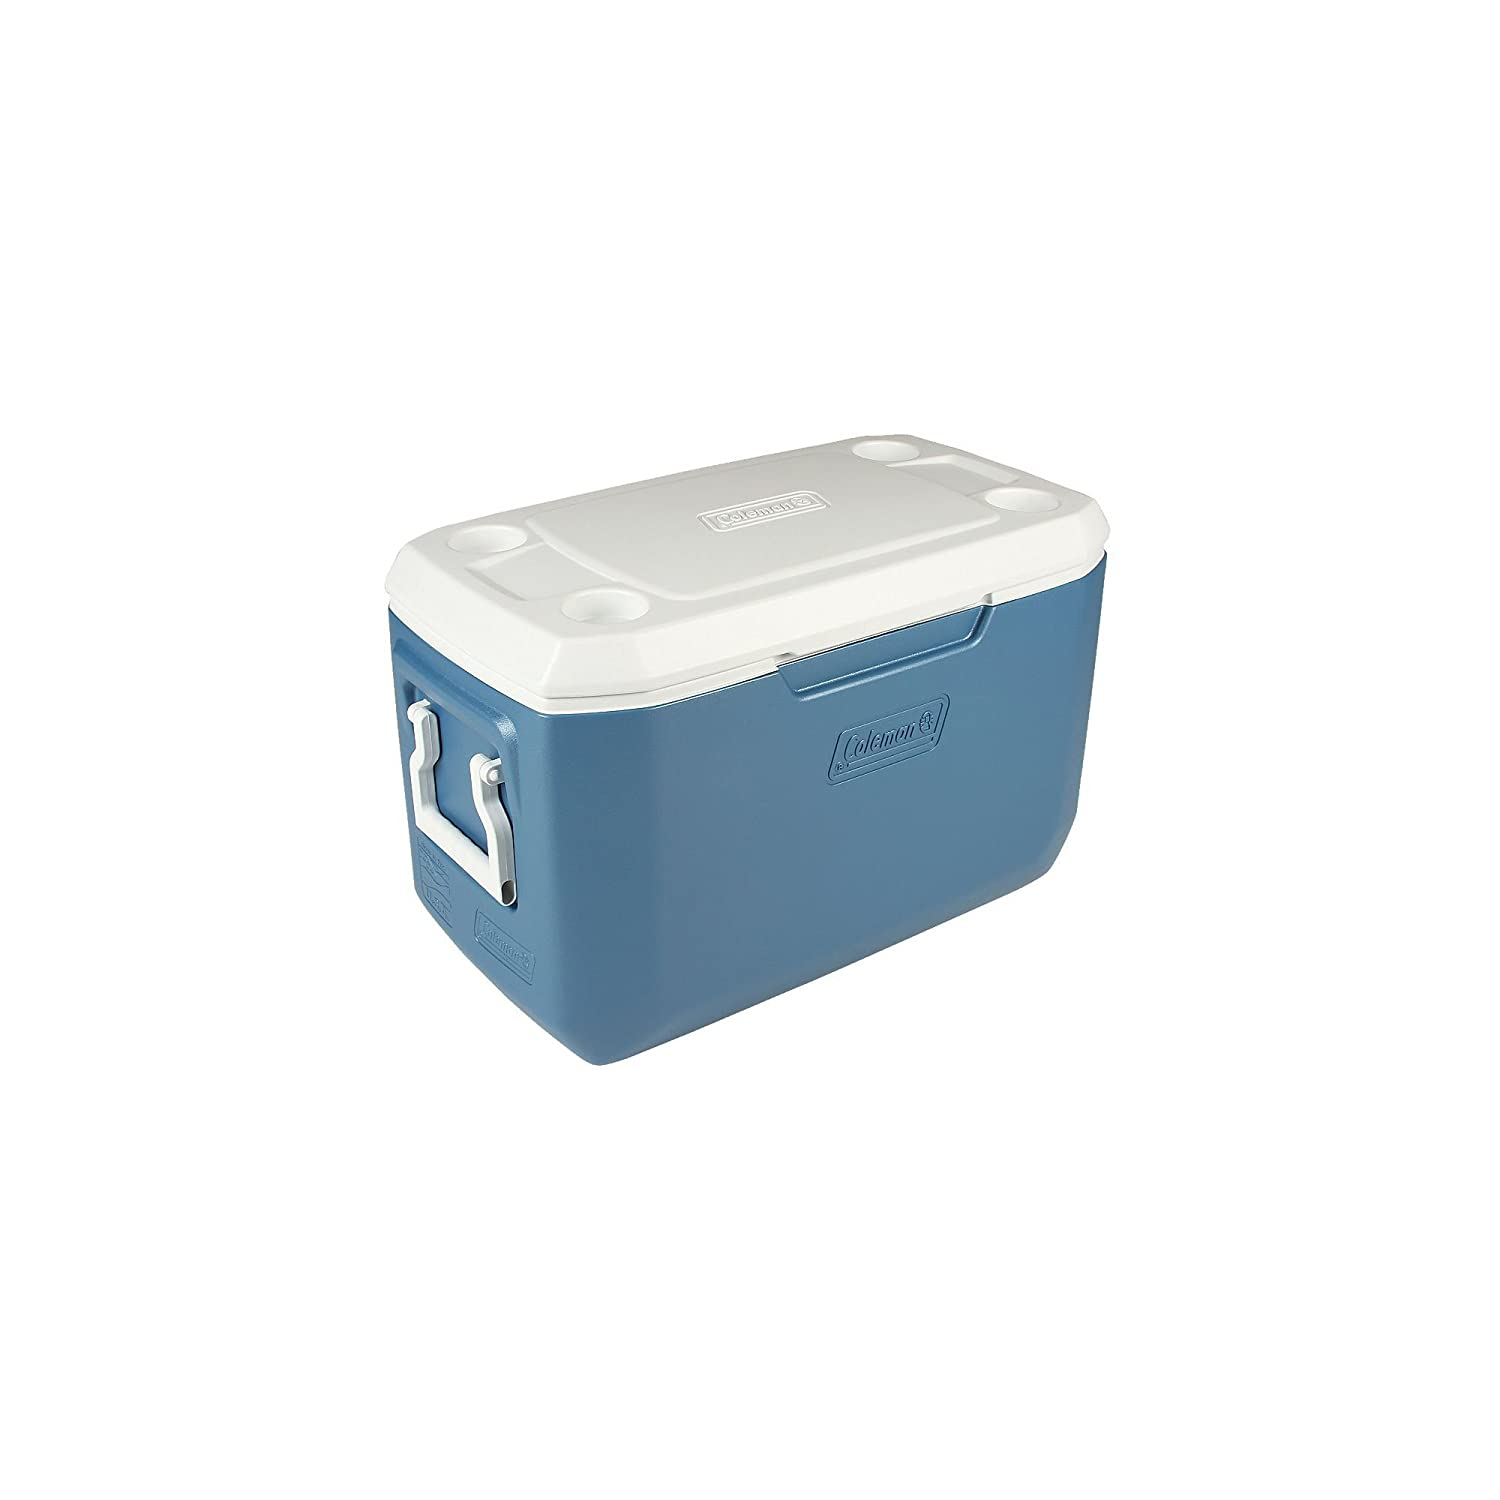 Cheap Coleman 70 Quart Xtreme 5 Cooler